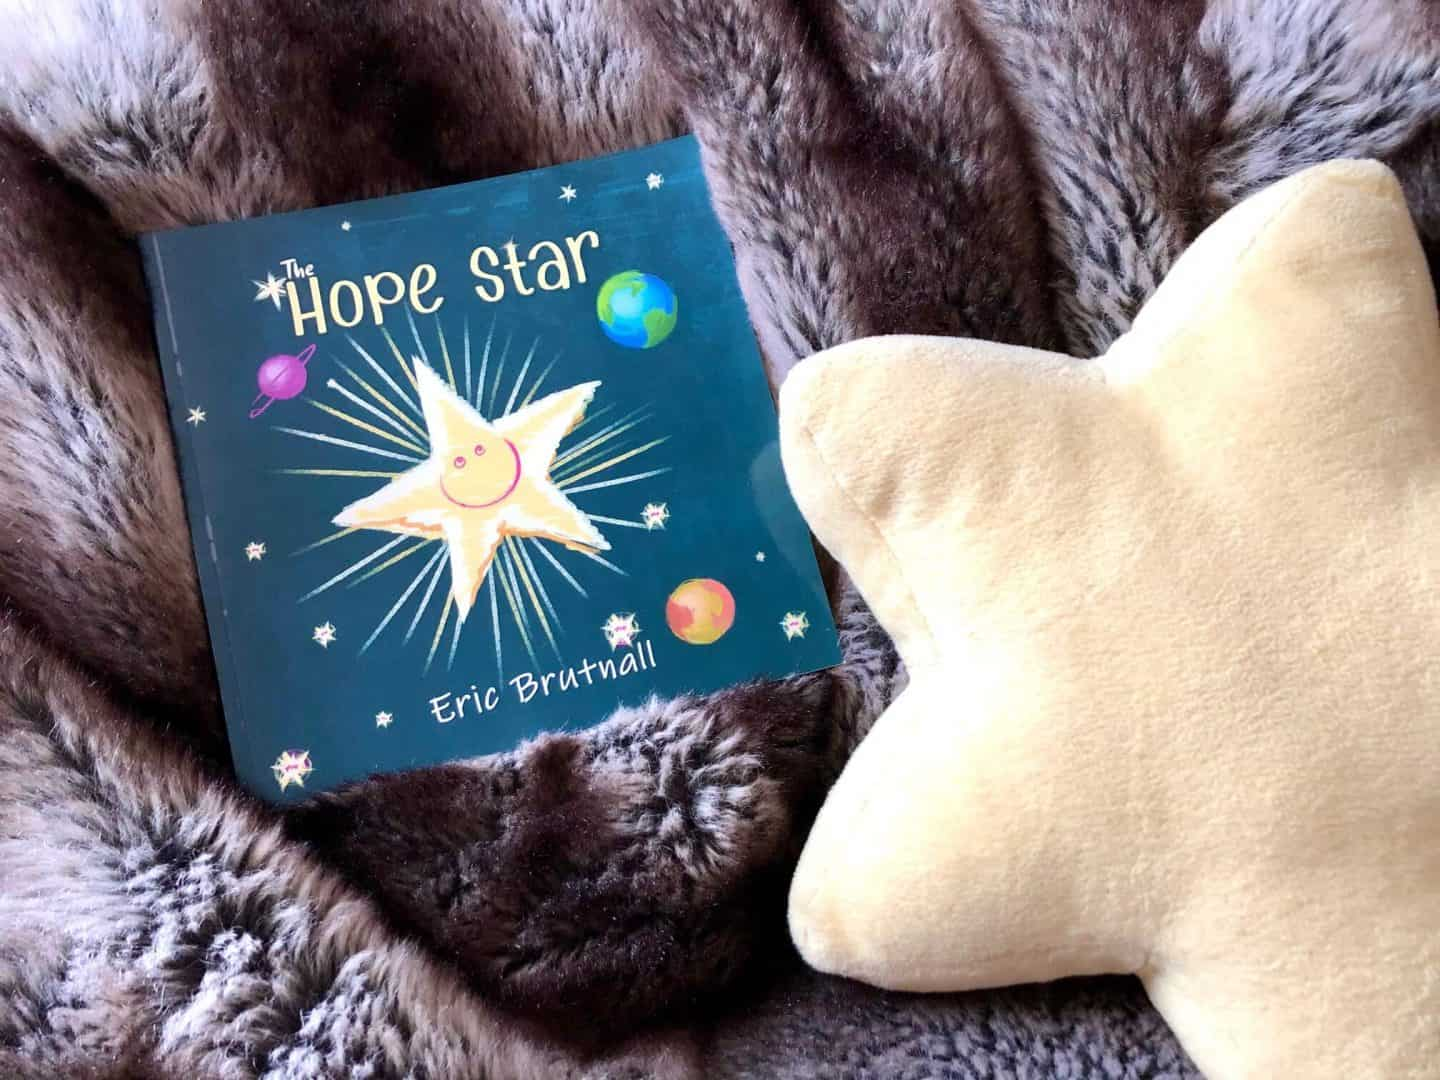 The Hope Star by Eric Brutnall - Review and Giveaway